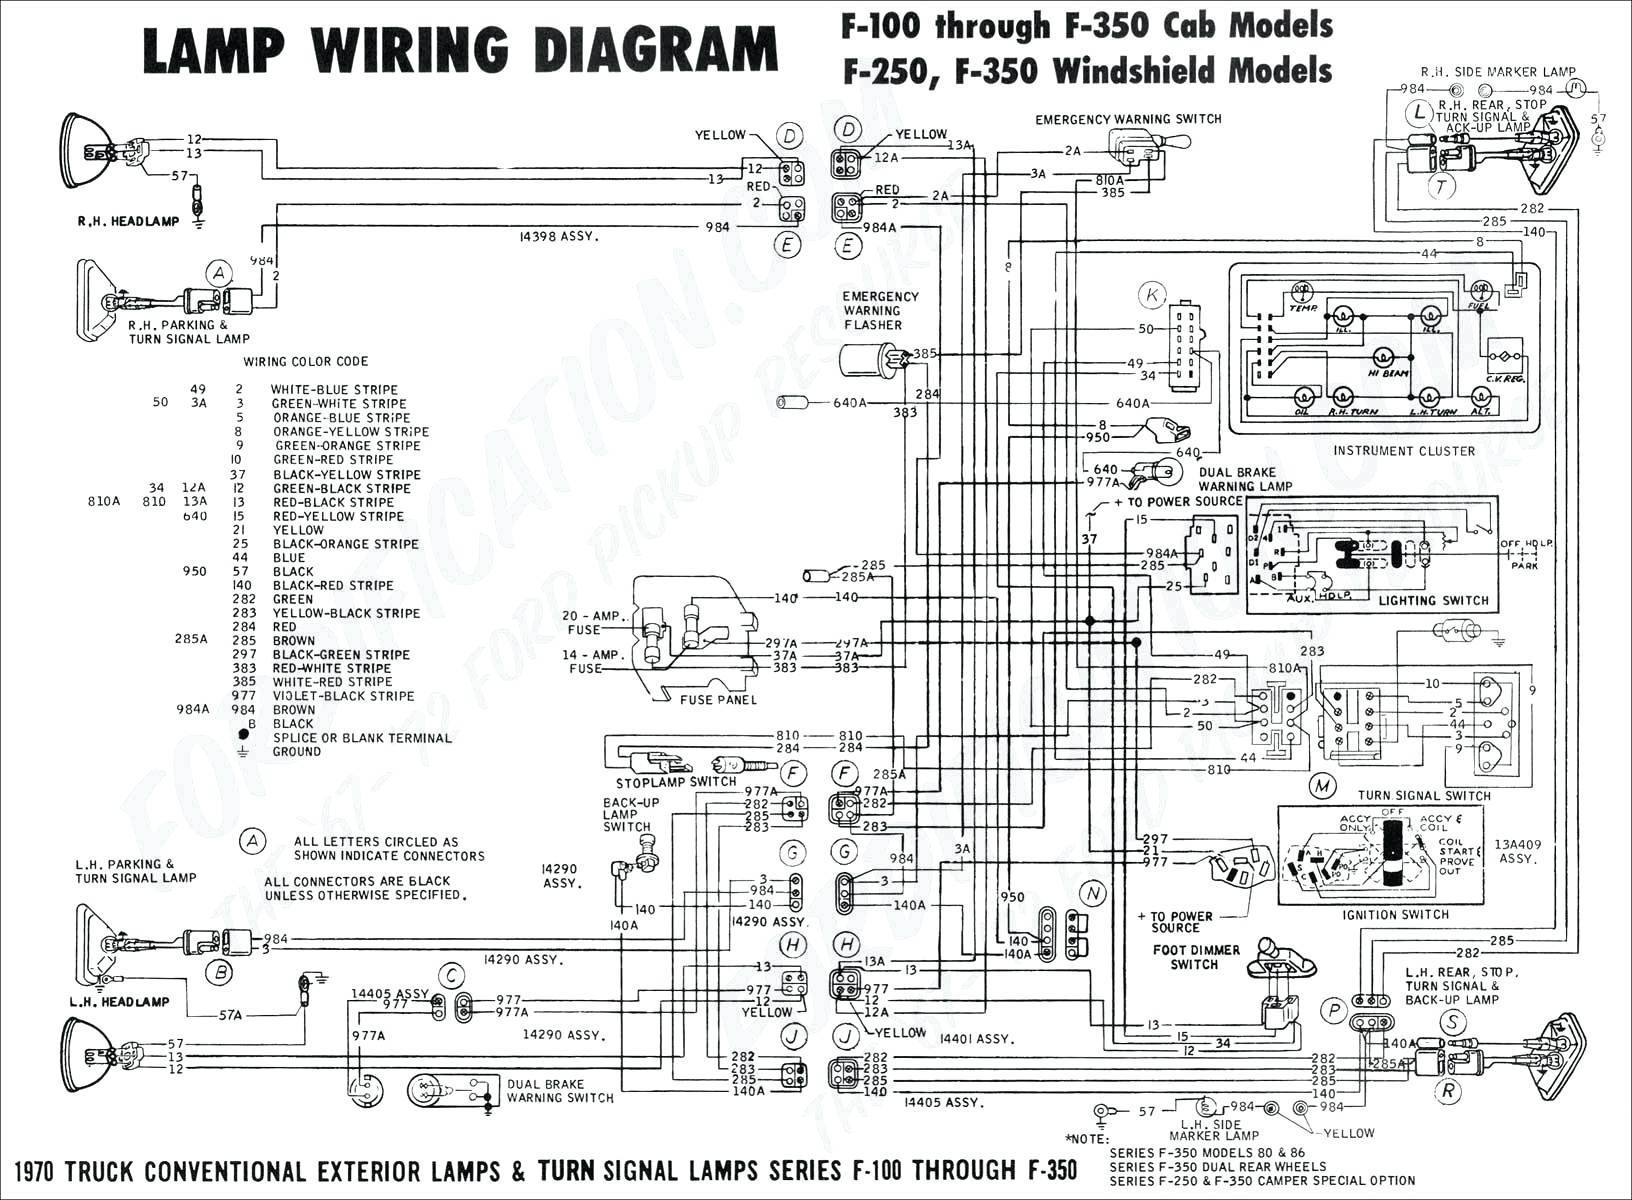 2002 Sebring Engine Diagram 2002 Sebring Fuse Box Wiring Diagram toolbox Of 2002 Sebring Engine Diagram